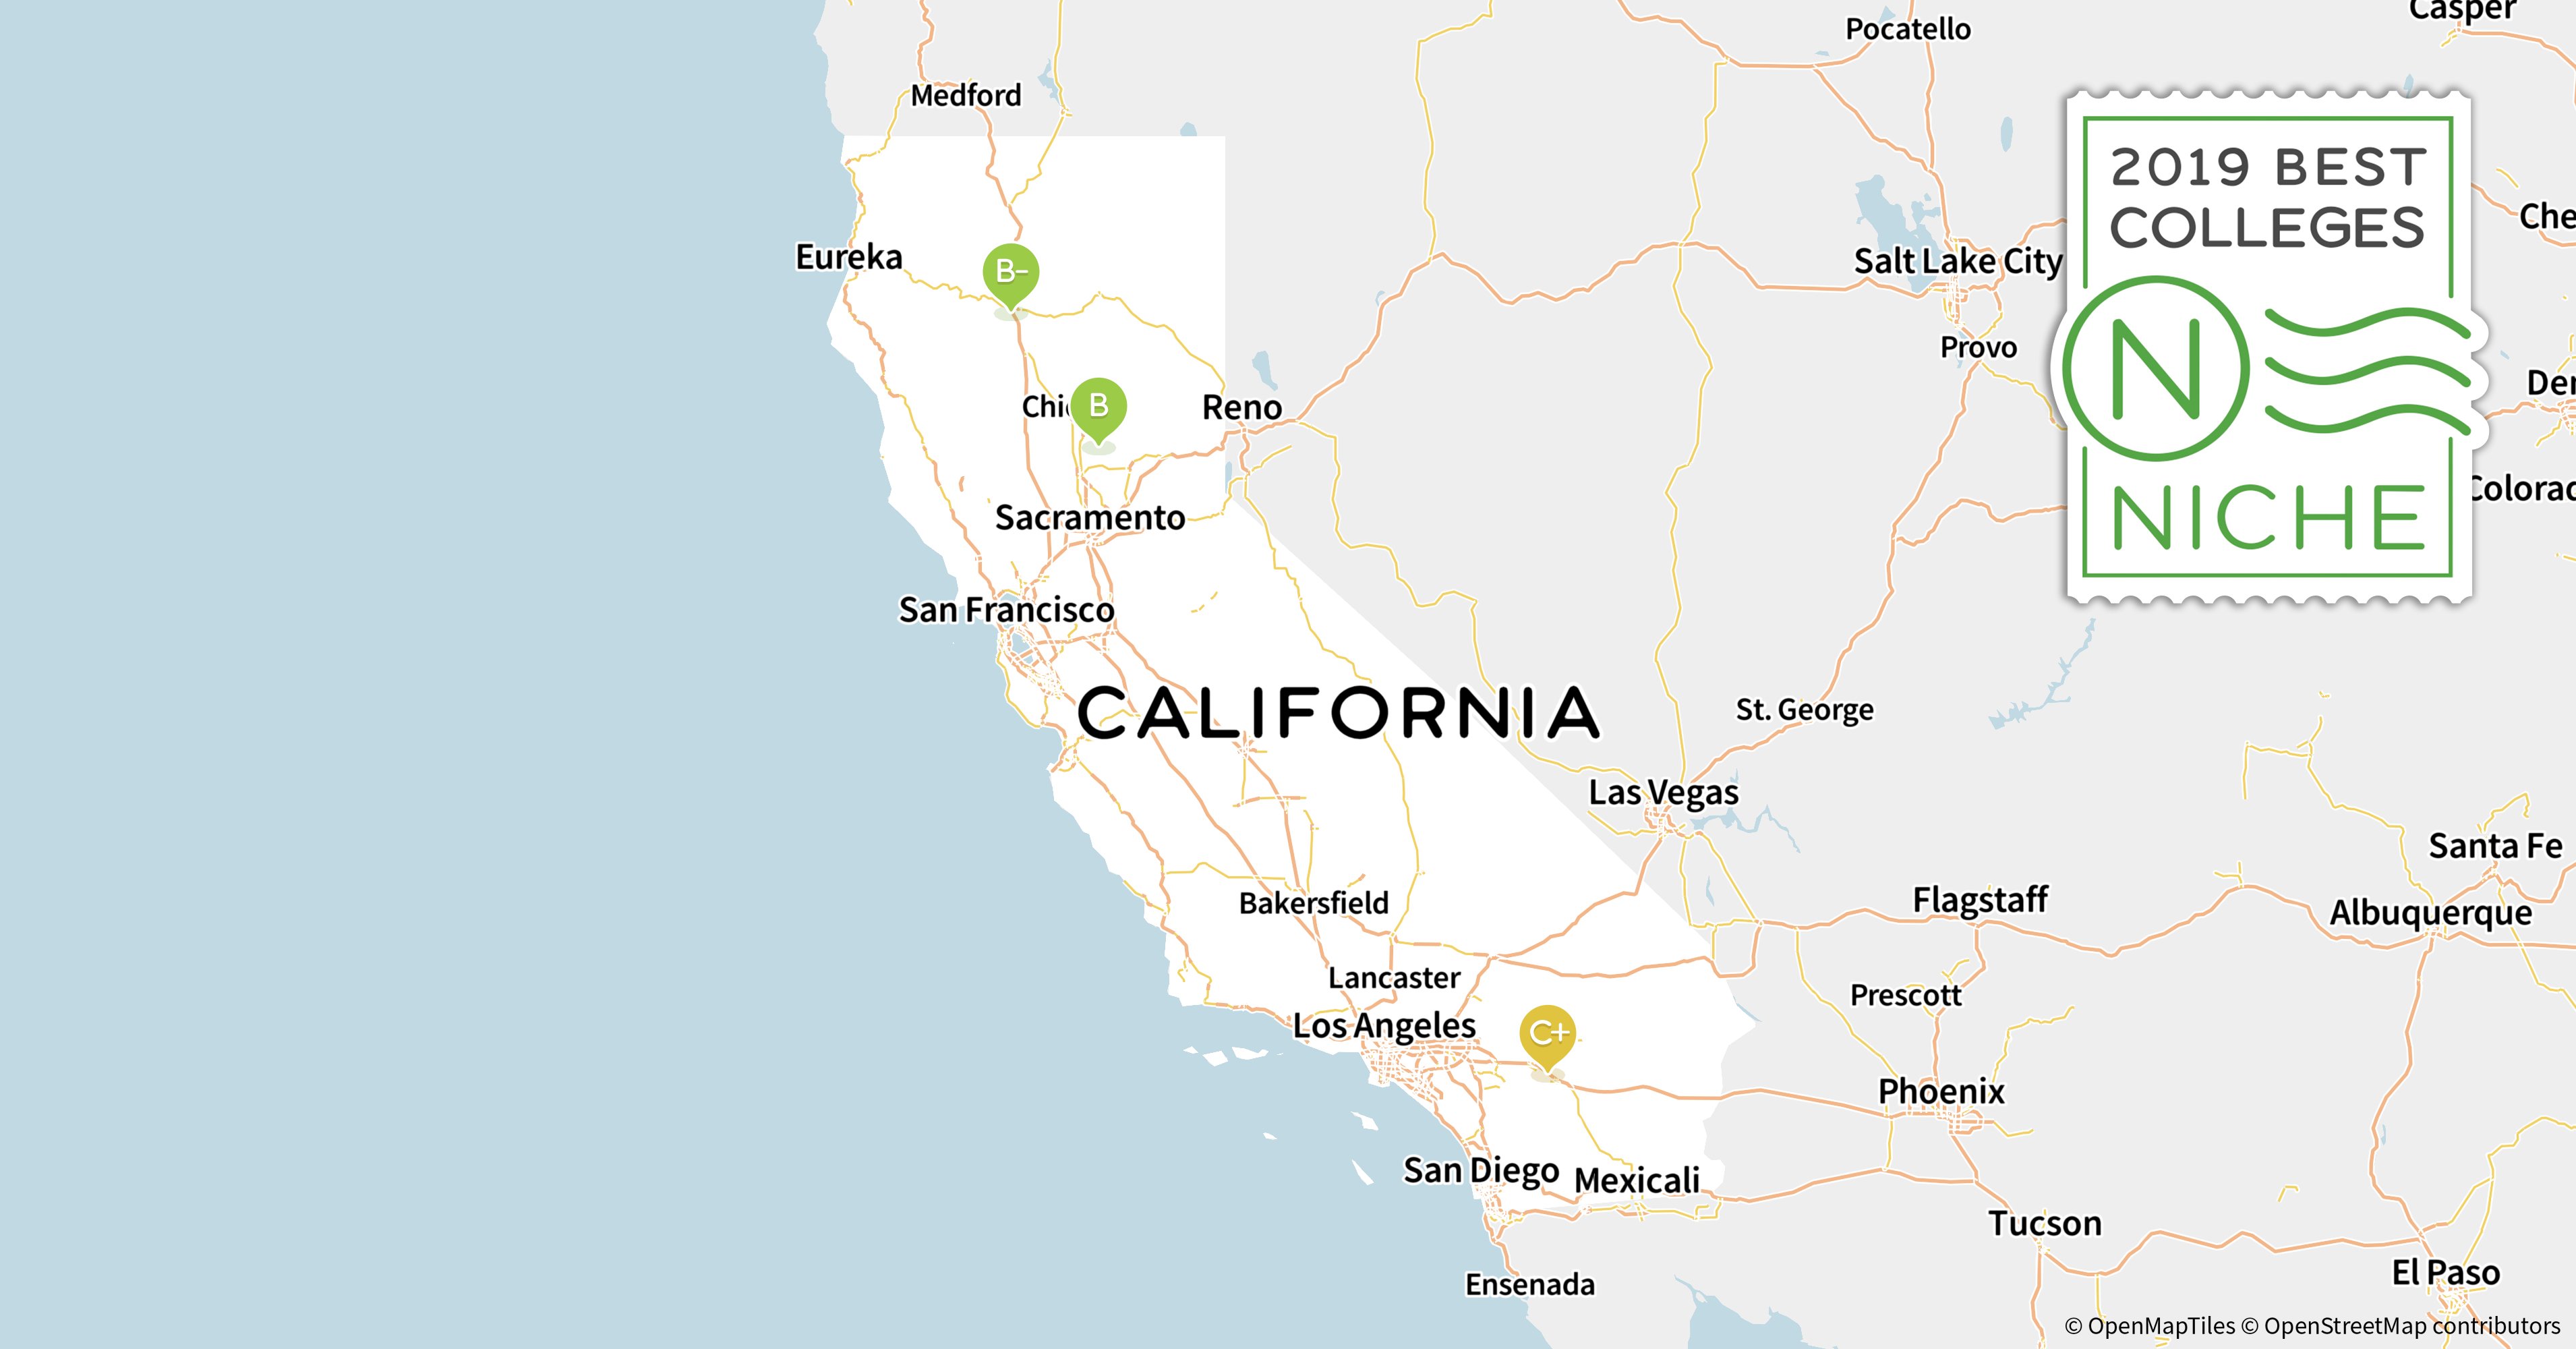 2019 Best Colleges In California - Niche - Colleges In California Map